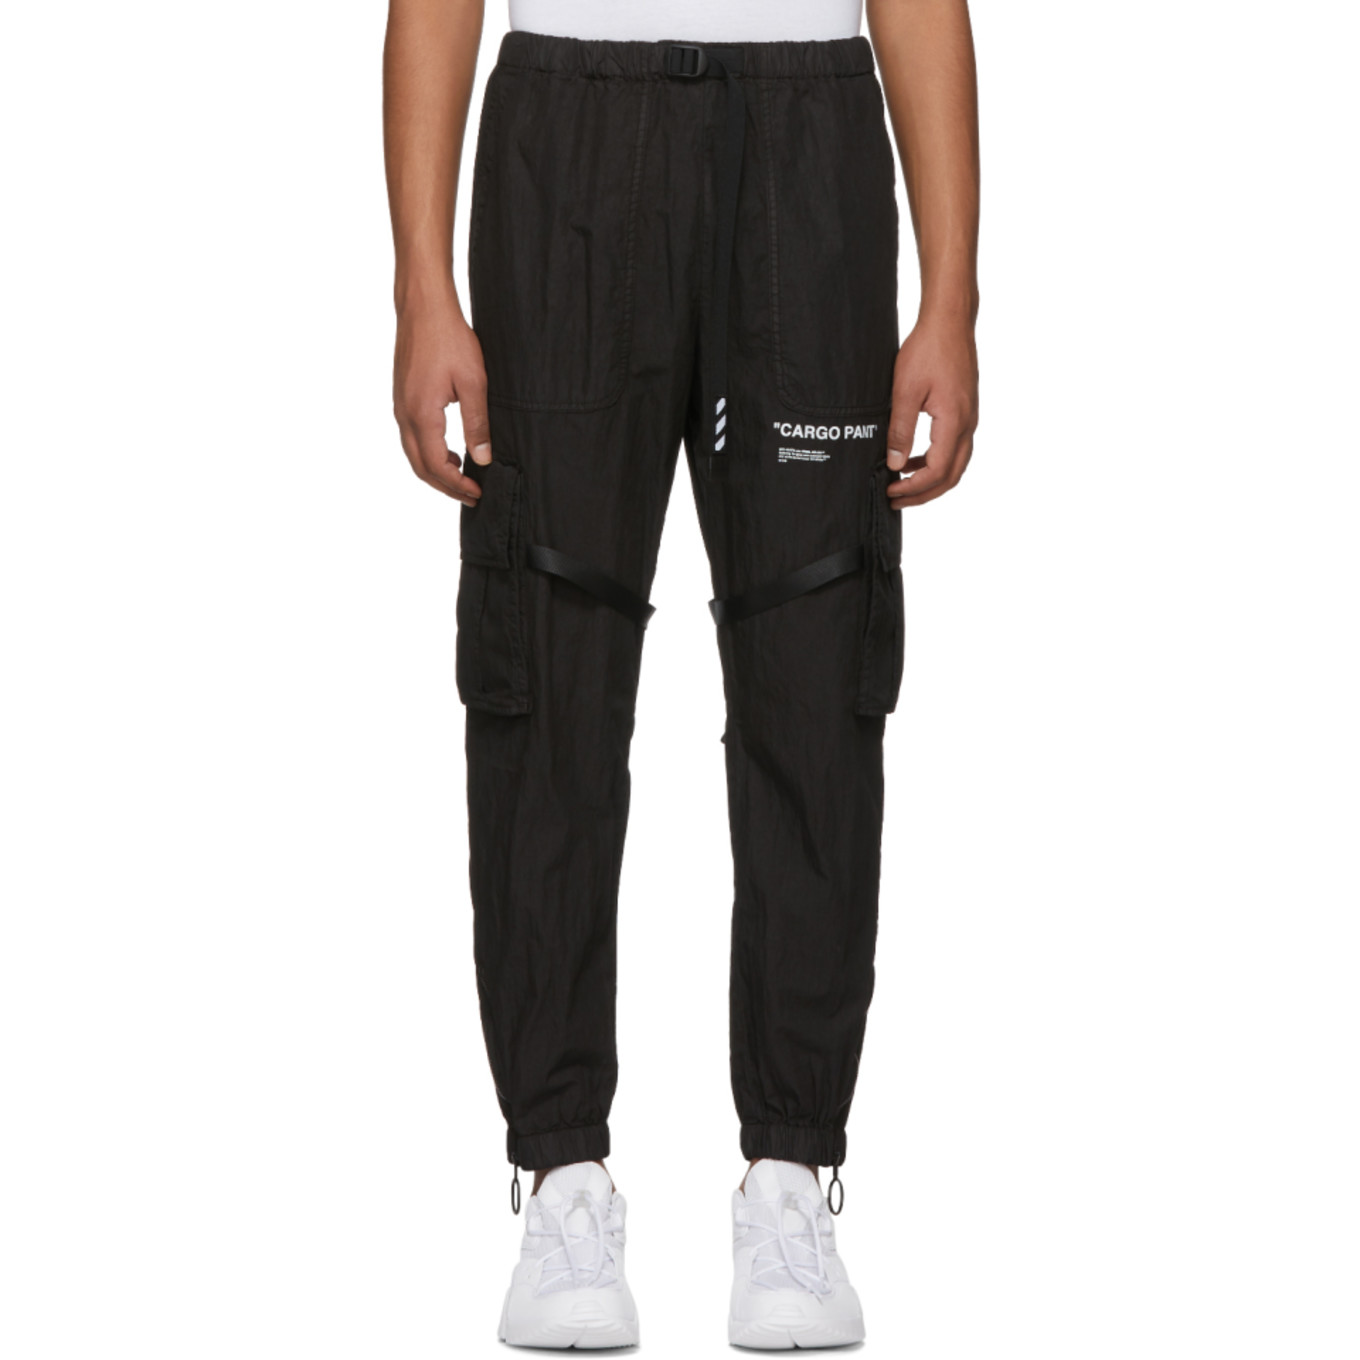 Black Parachute Cargo Pants by Off White